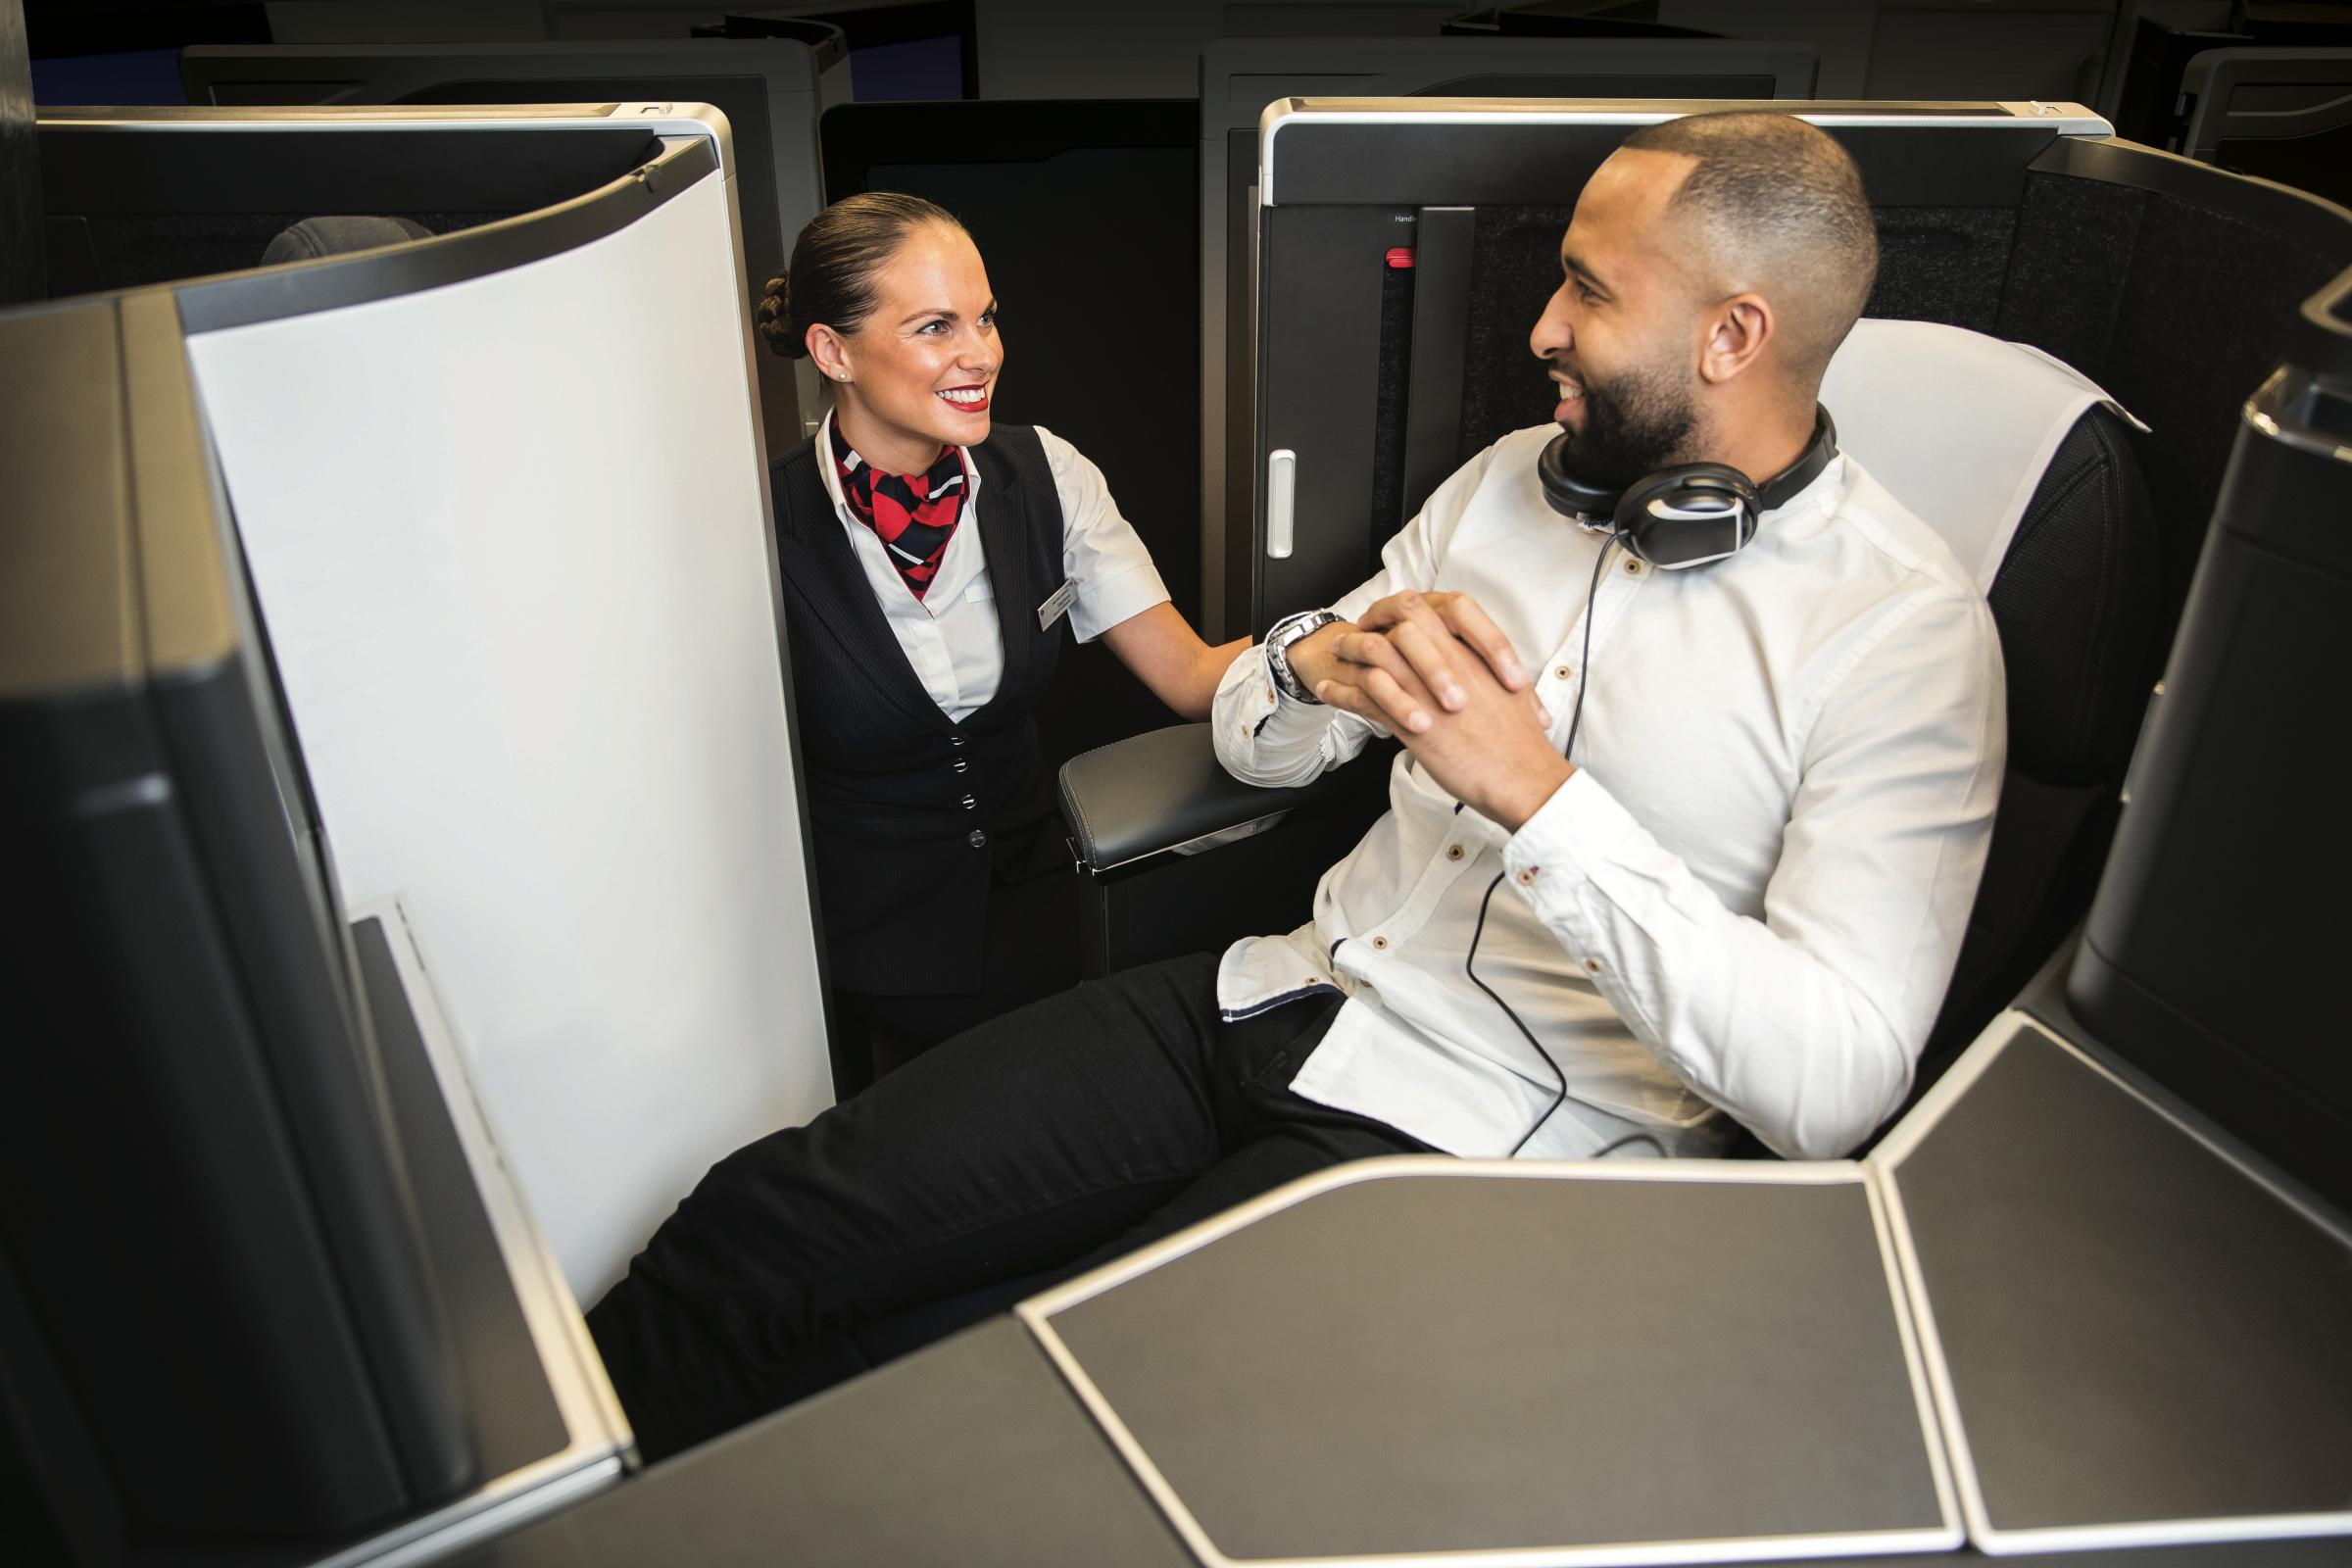 British Airways' new business class offering will be called Club Suite (British Airways/PA)